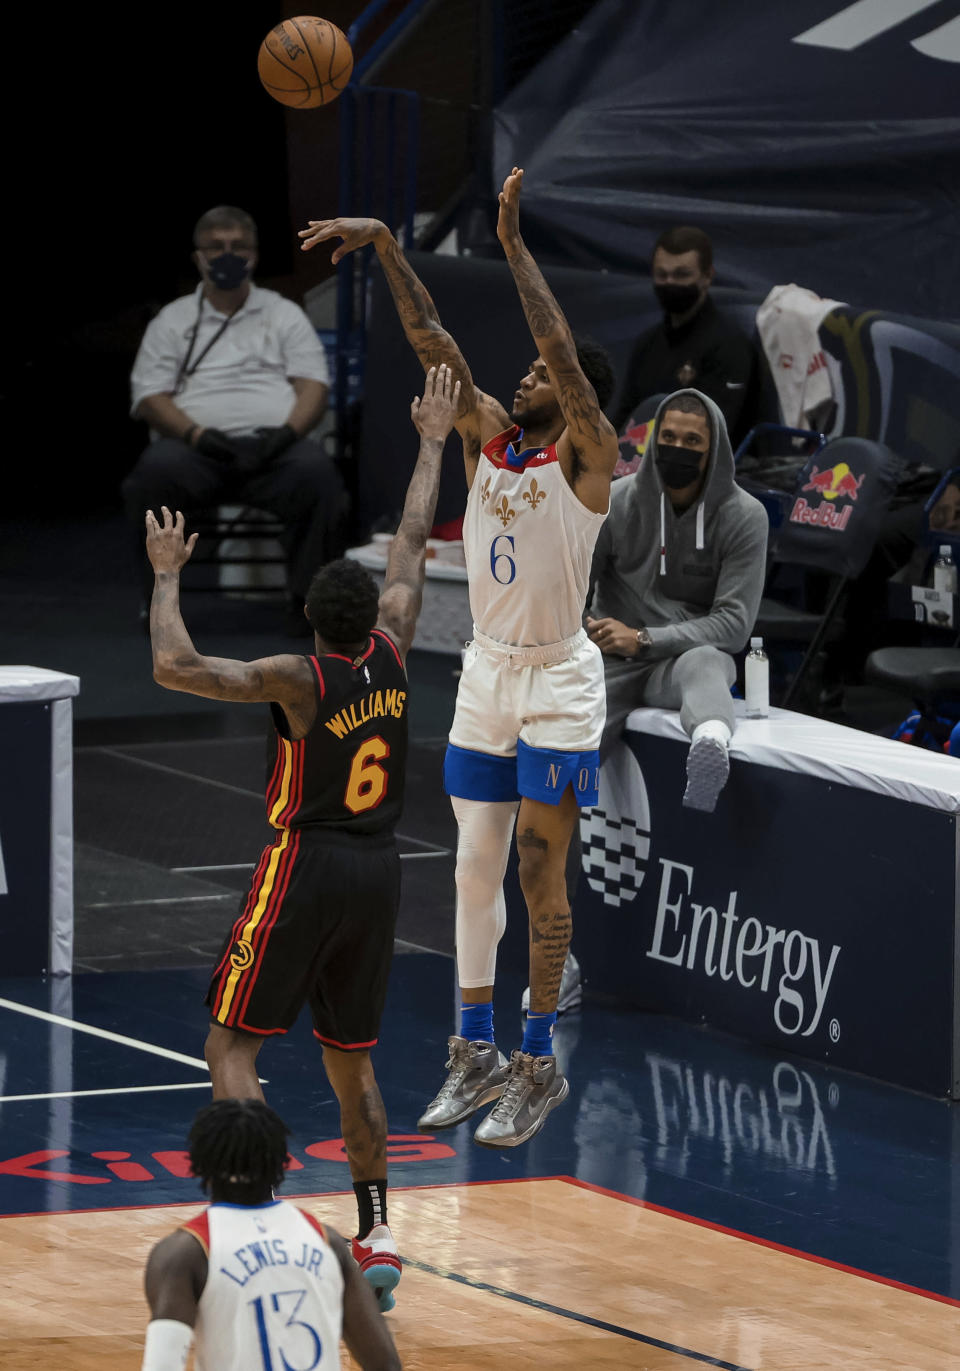 New Orleans Pelicans guard Nickeil Alexander-Walker (6) shoots over Atlanta Hawks guard Lou Williams (6) in the first quarter of an NBA basketball game in New Orleans, Friday, April 2, 2021. (AP Photo/Derick Hingle)